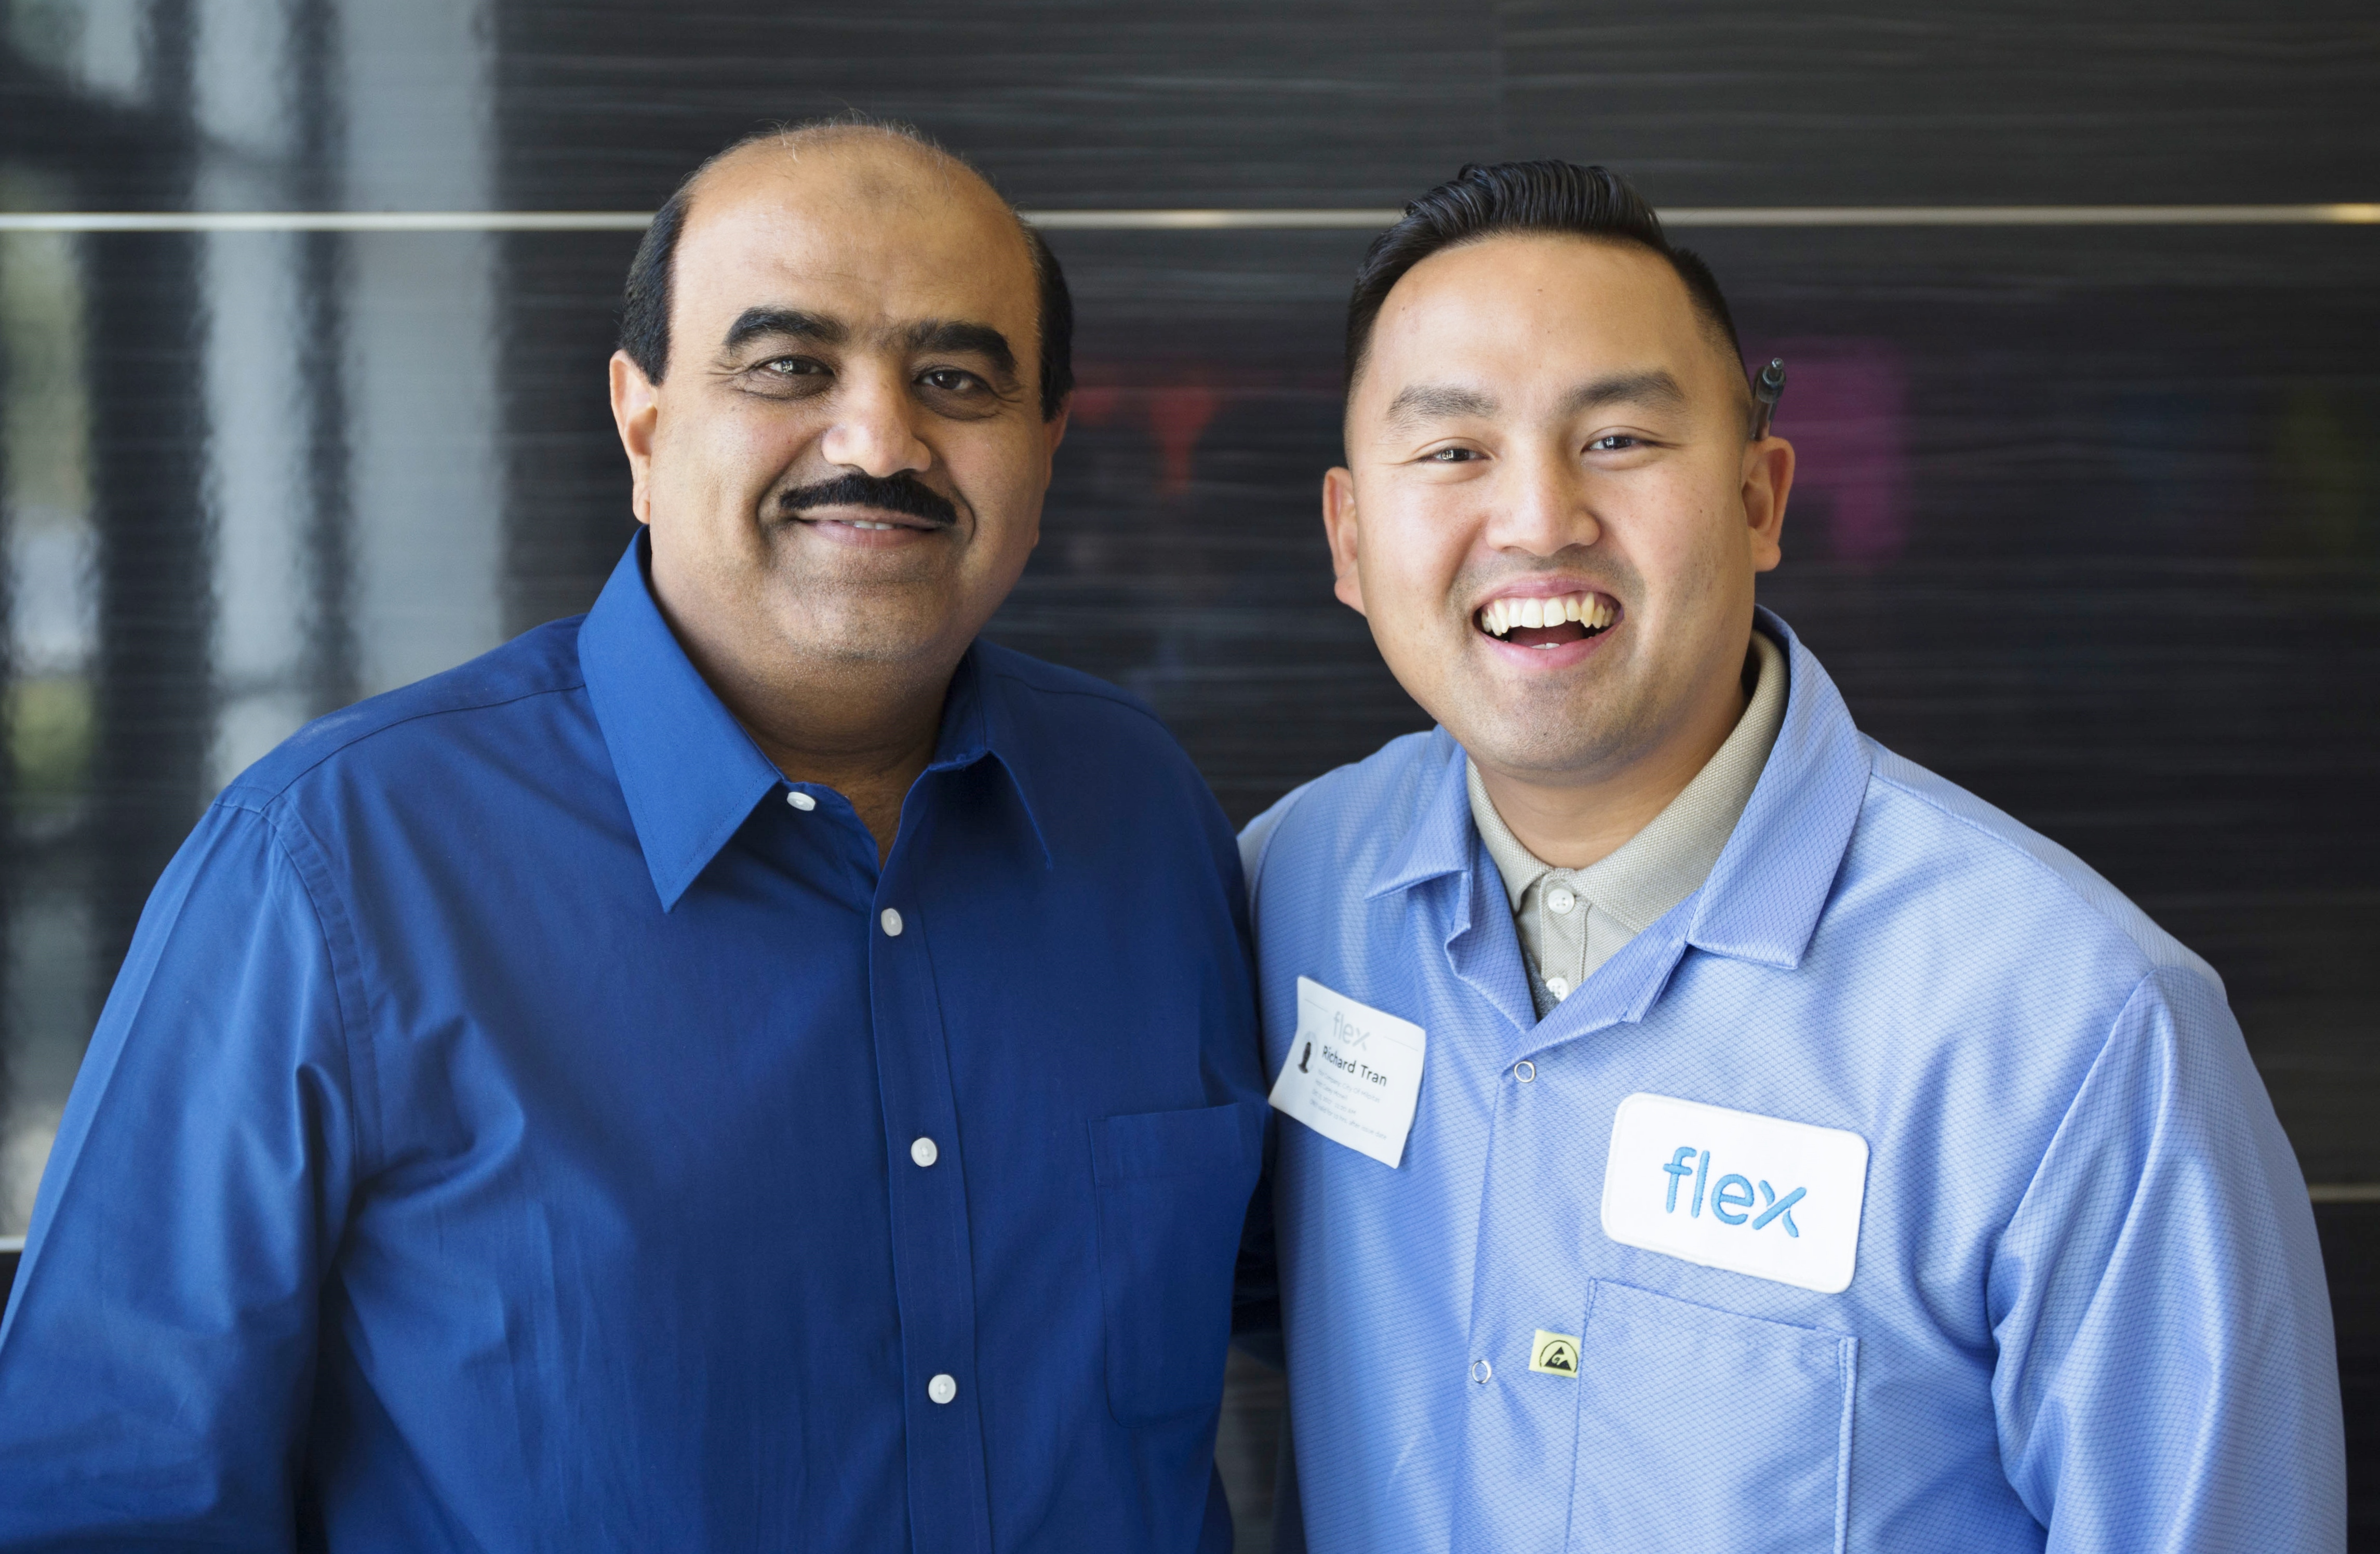 General Manager, Zahid Hussain, of Flex Milpitas and Milpitas Mayor, Rich Tran, pictured together.